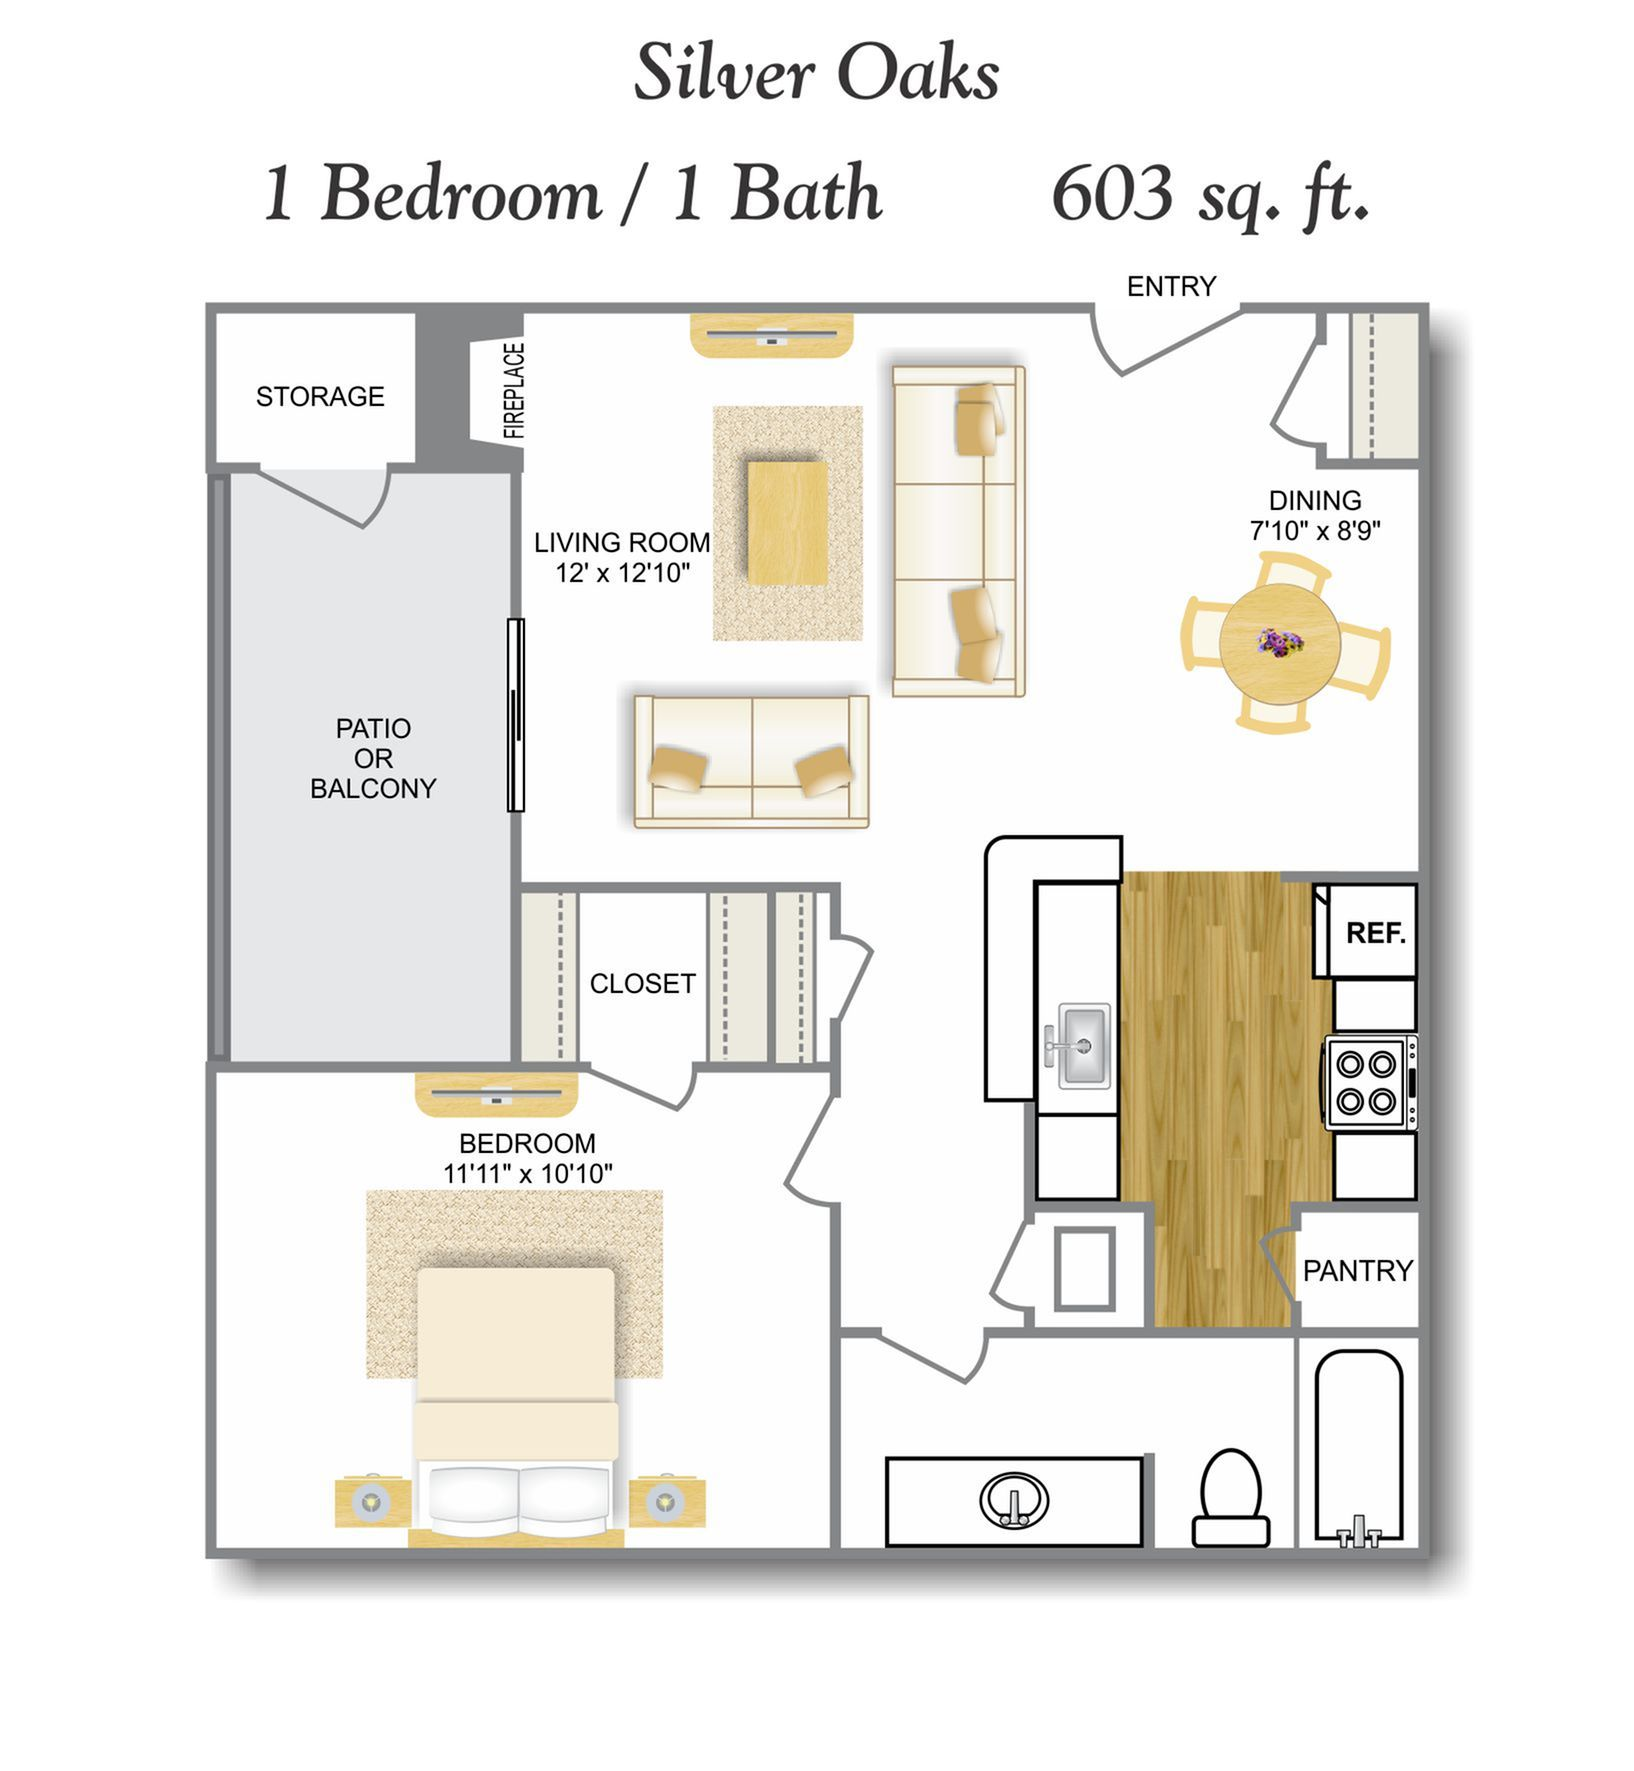 Bay Window 1 Bedroom Floor Plan | Apartments In Leon Valley San Antonio TX | Silver Oaks Apartments